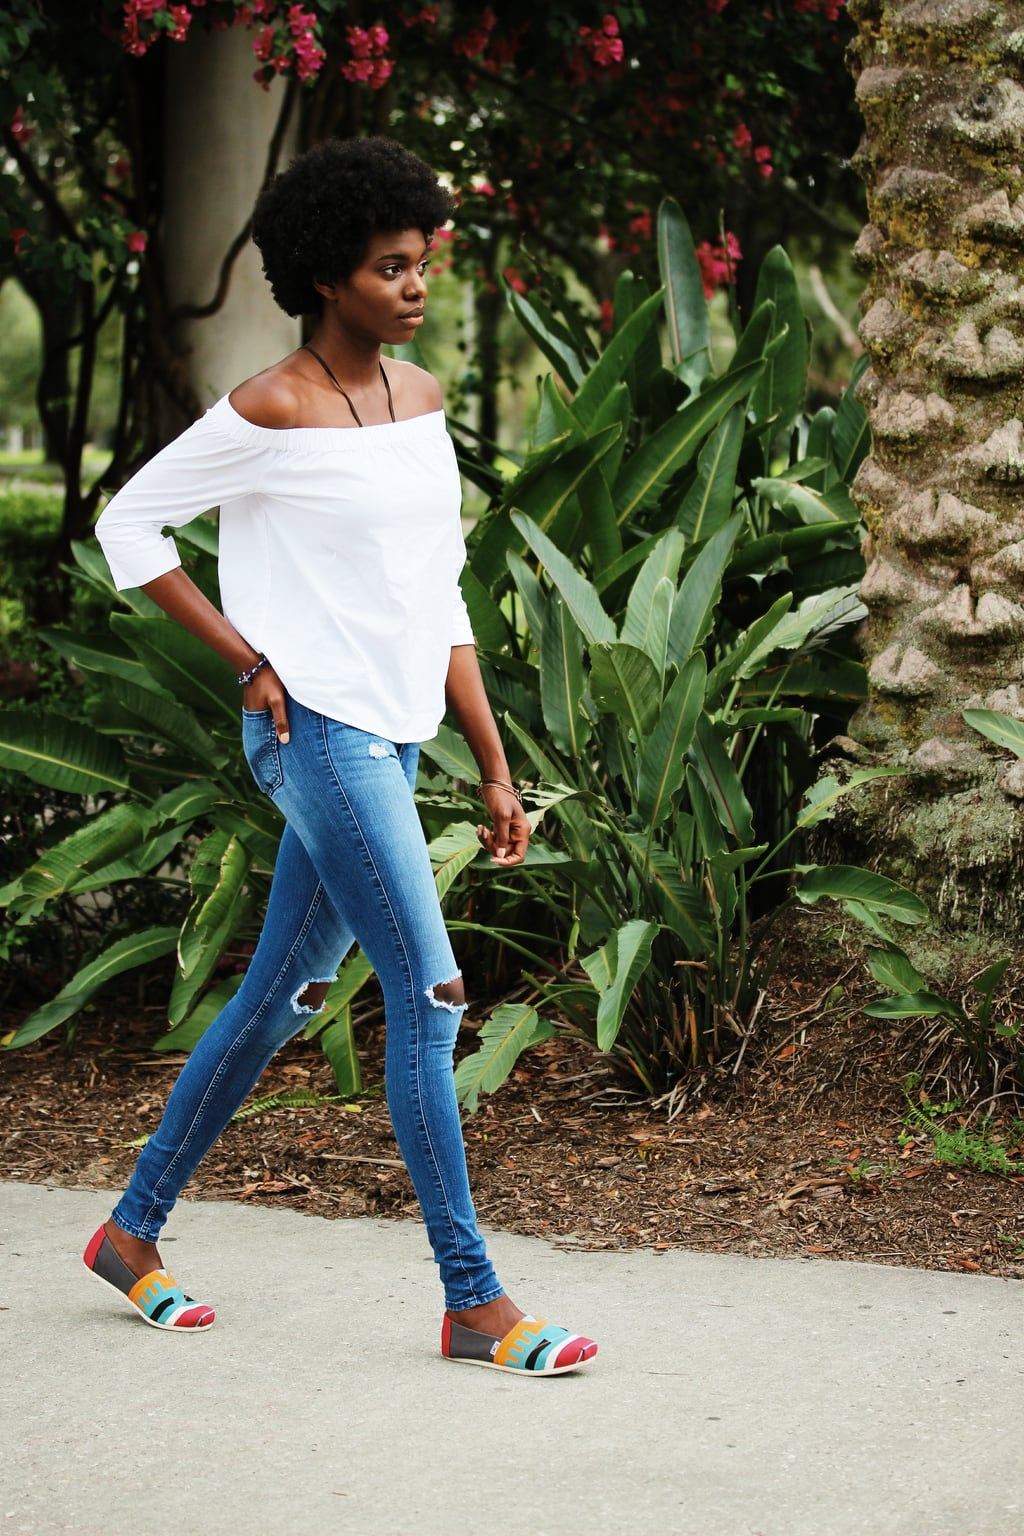 University of South Florida student Uchoku wears a simple white off-the-shoulder blouse with distressed light-wash jeans and colorful Toms shoes.